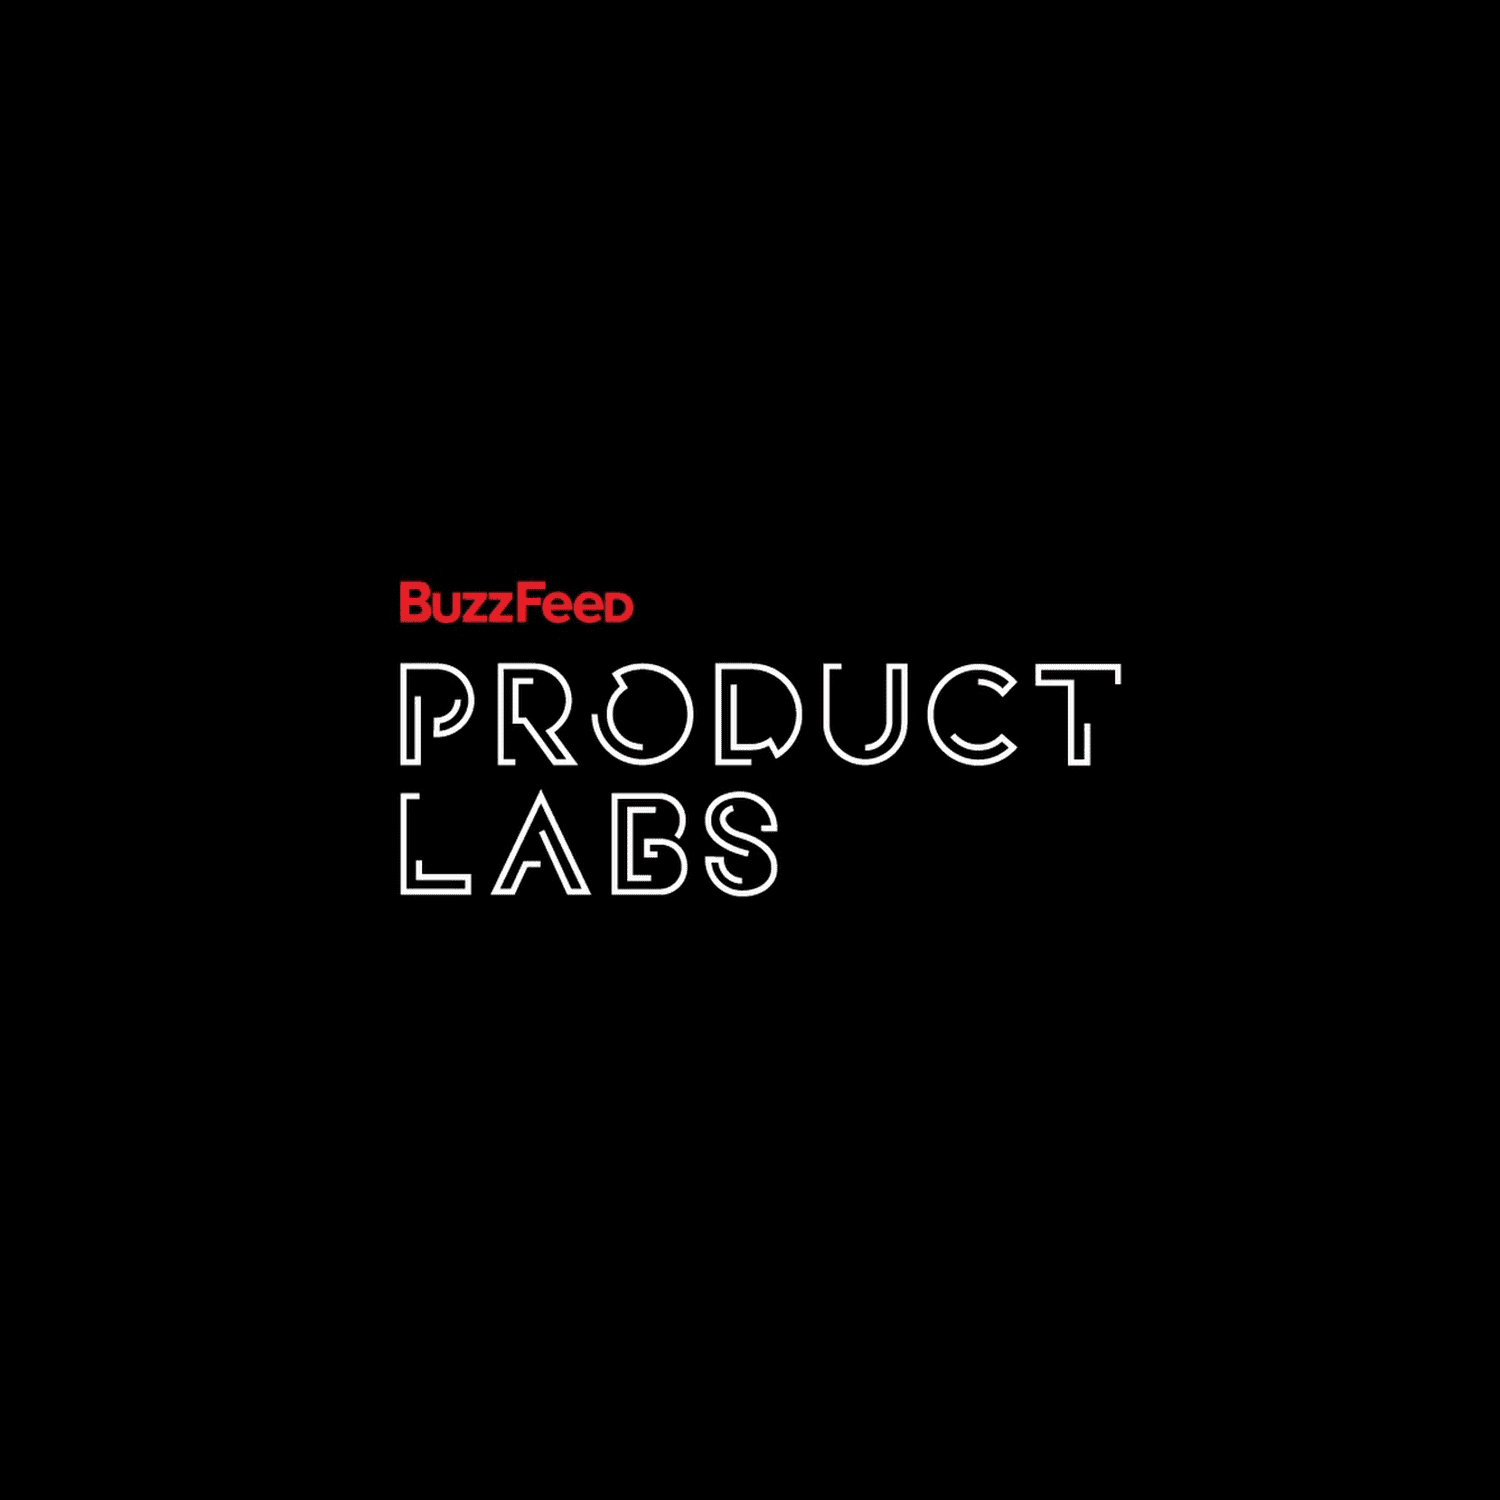 BuzzFeed Product Labs